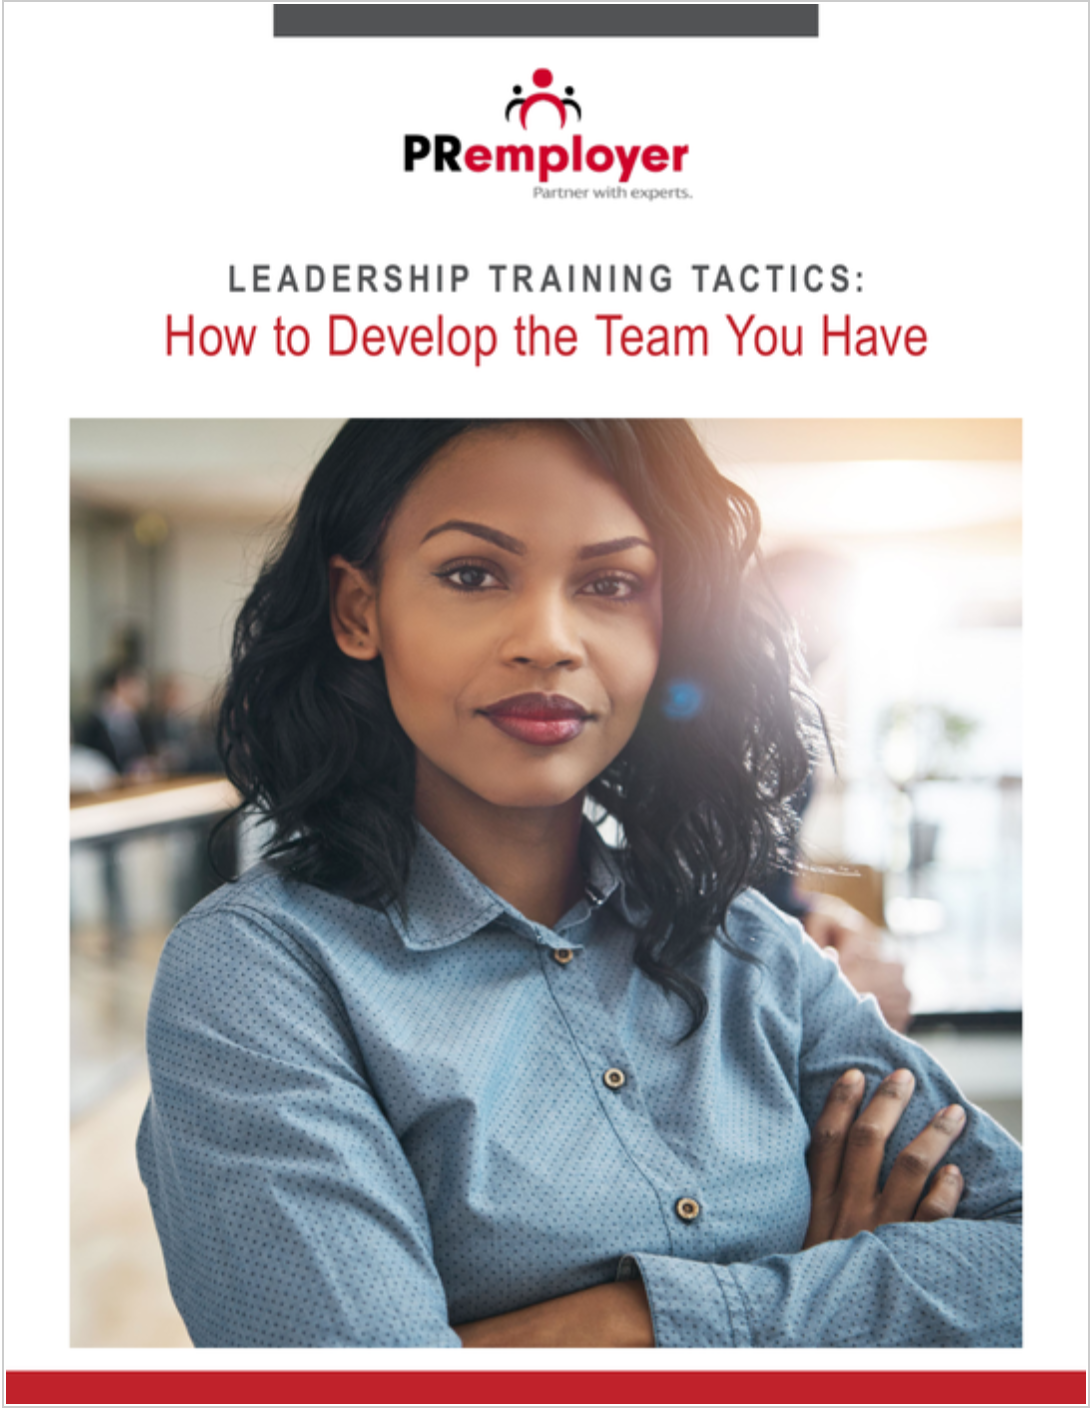 Leadership Training Tactics - How to Develop the Team You Have-1